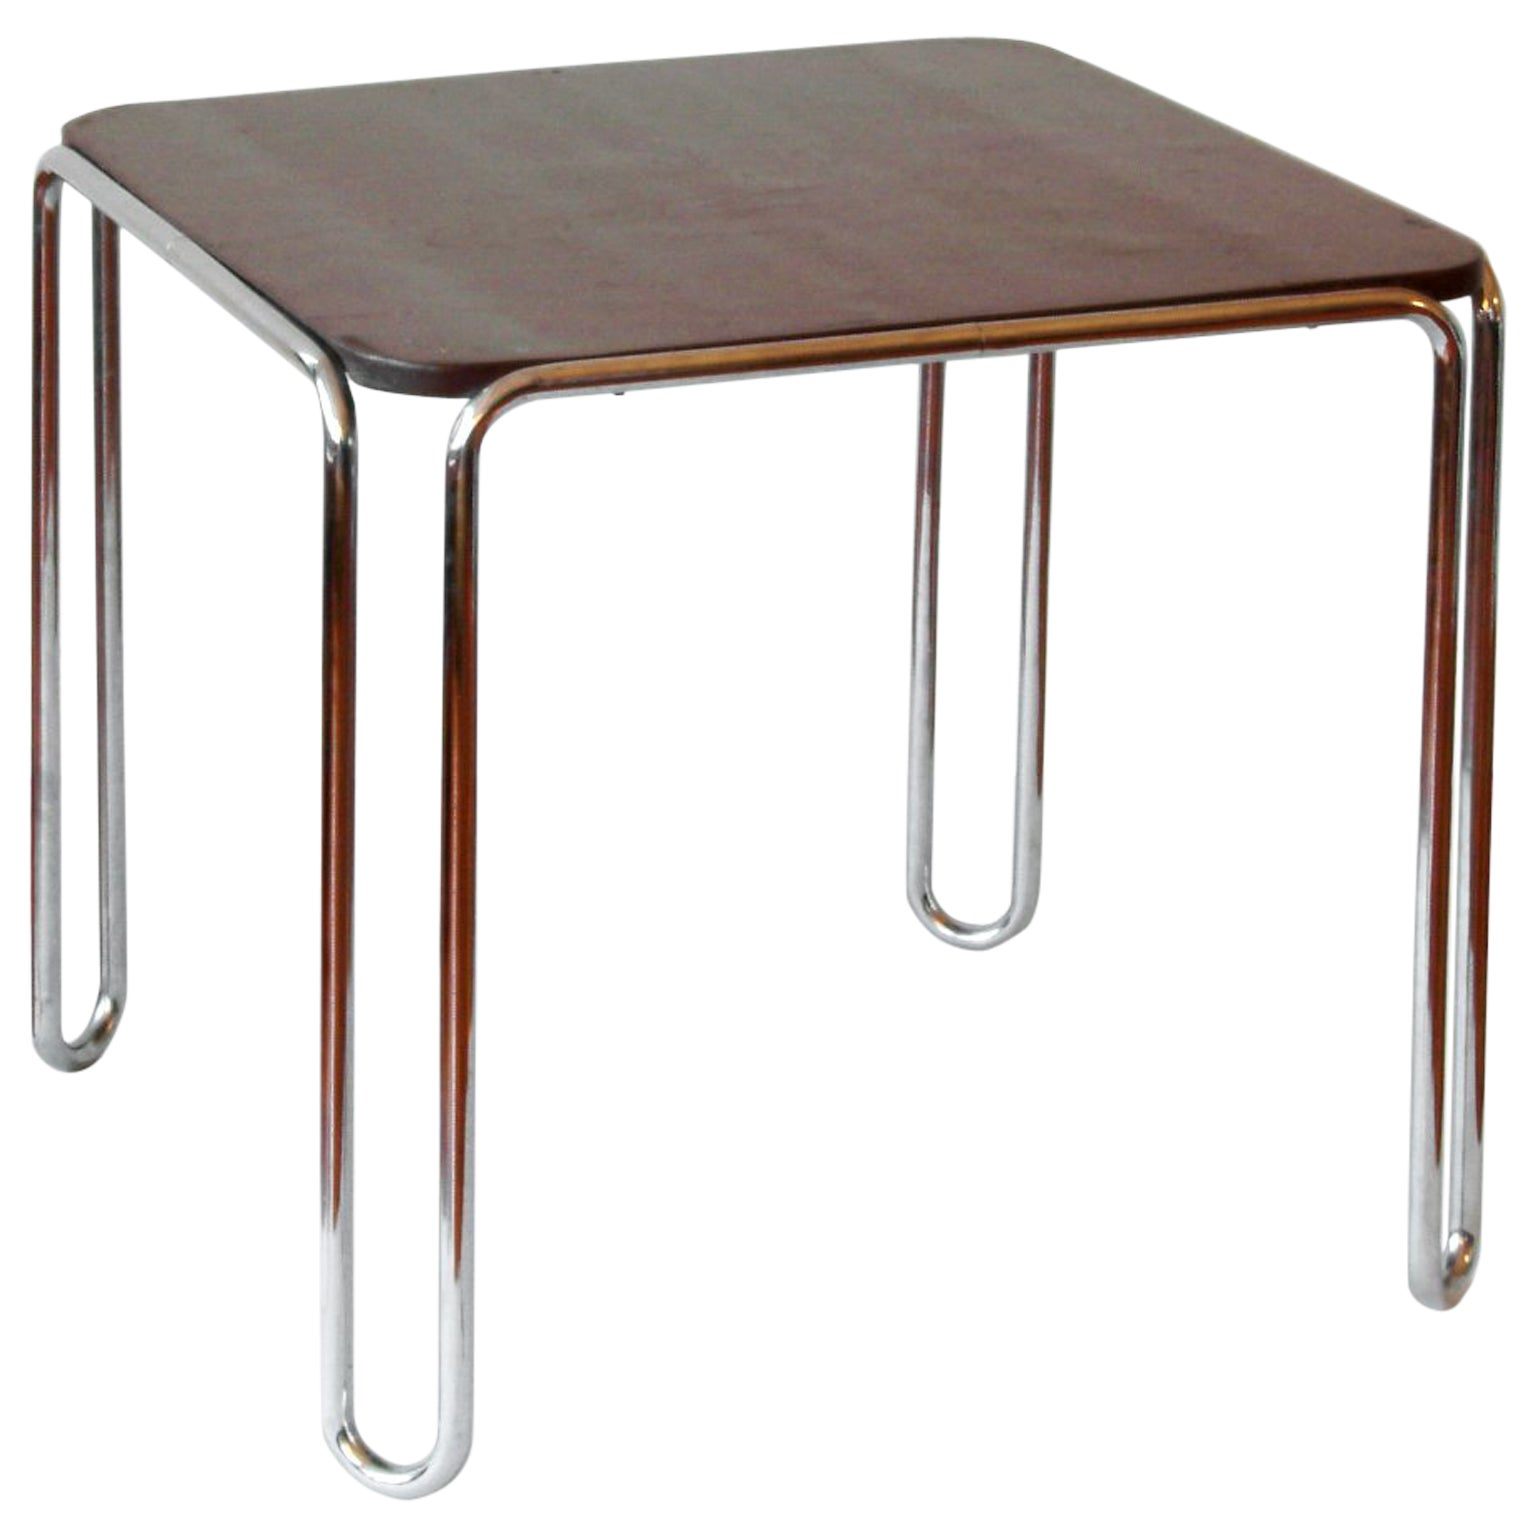 Art Deco Möbel München Tubular Steel B10 Table By Marcel Breuer Standard Möbel Berlin Circa 1929